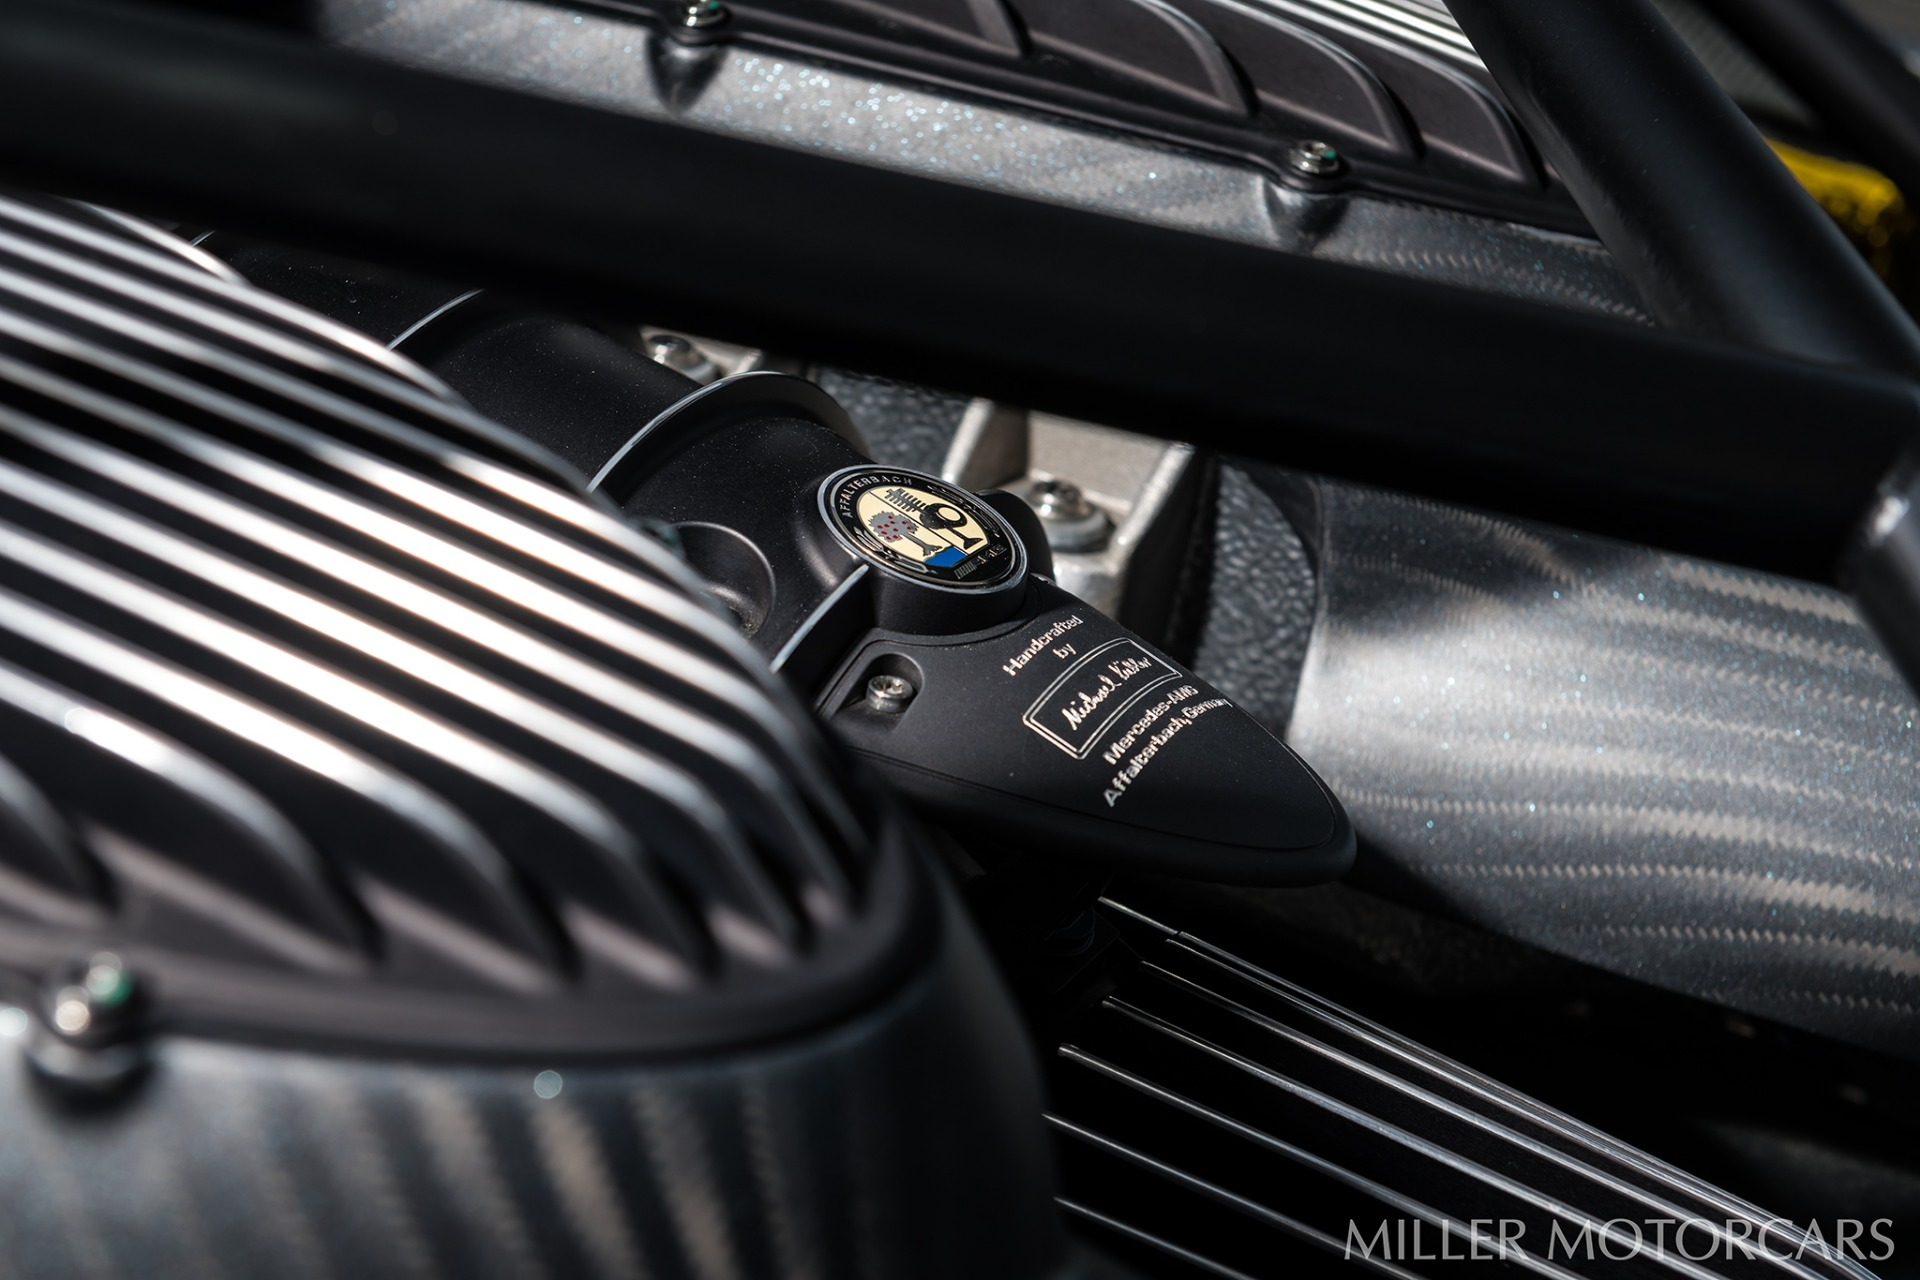 Used 2017 Pagani Huayra BC Macchina Volante For Sale In Greenwich, CT 3051_p25